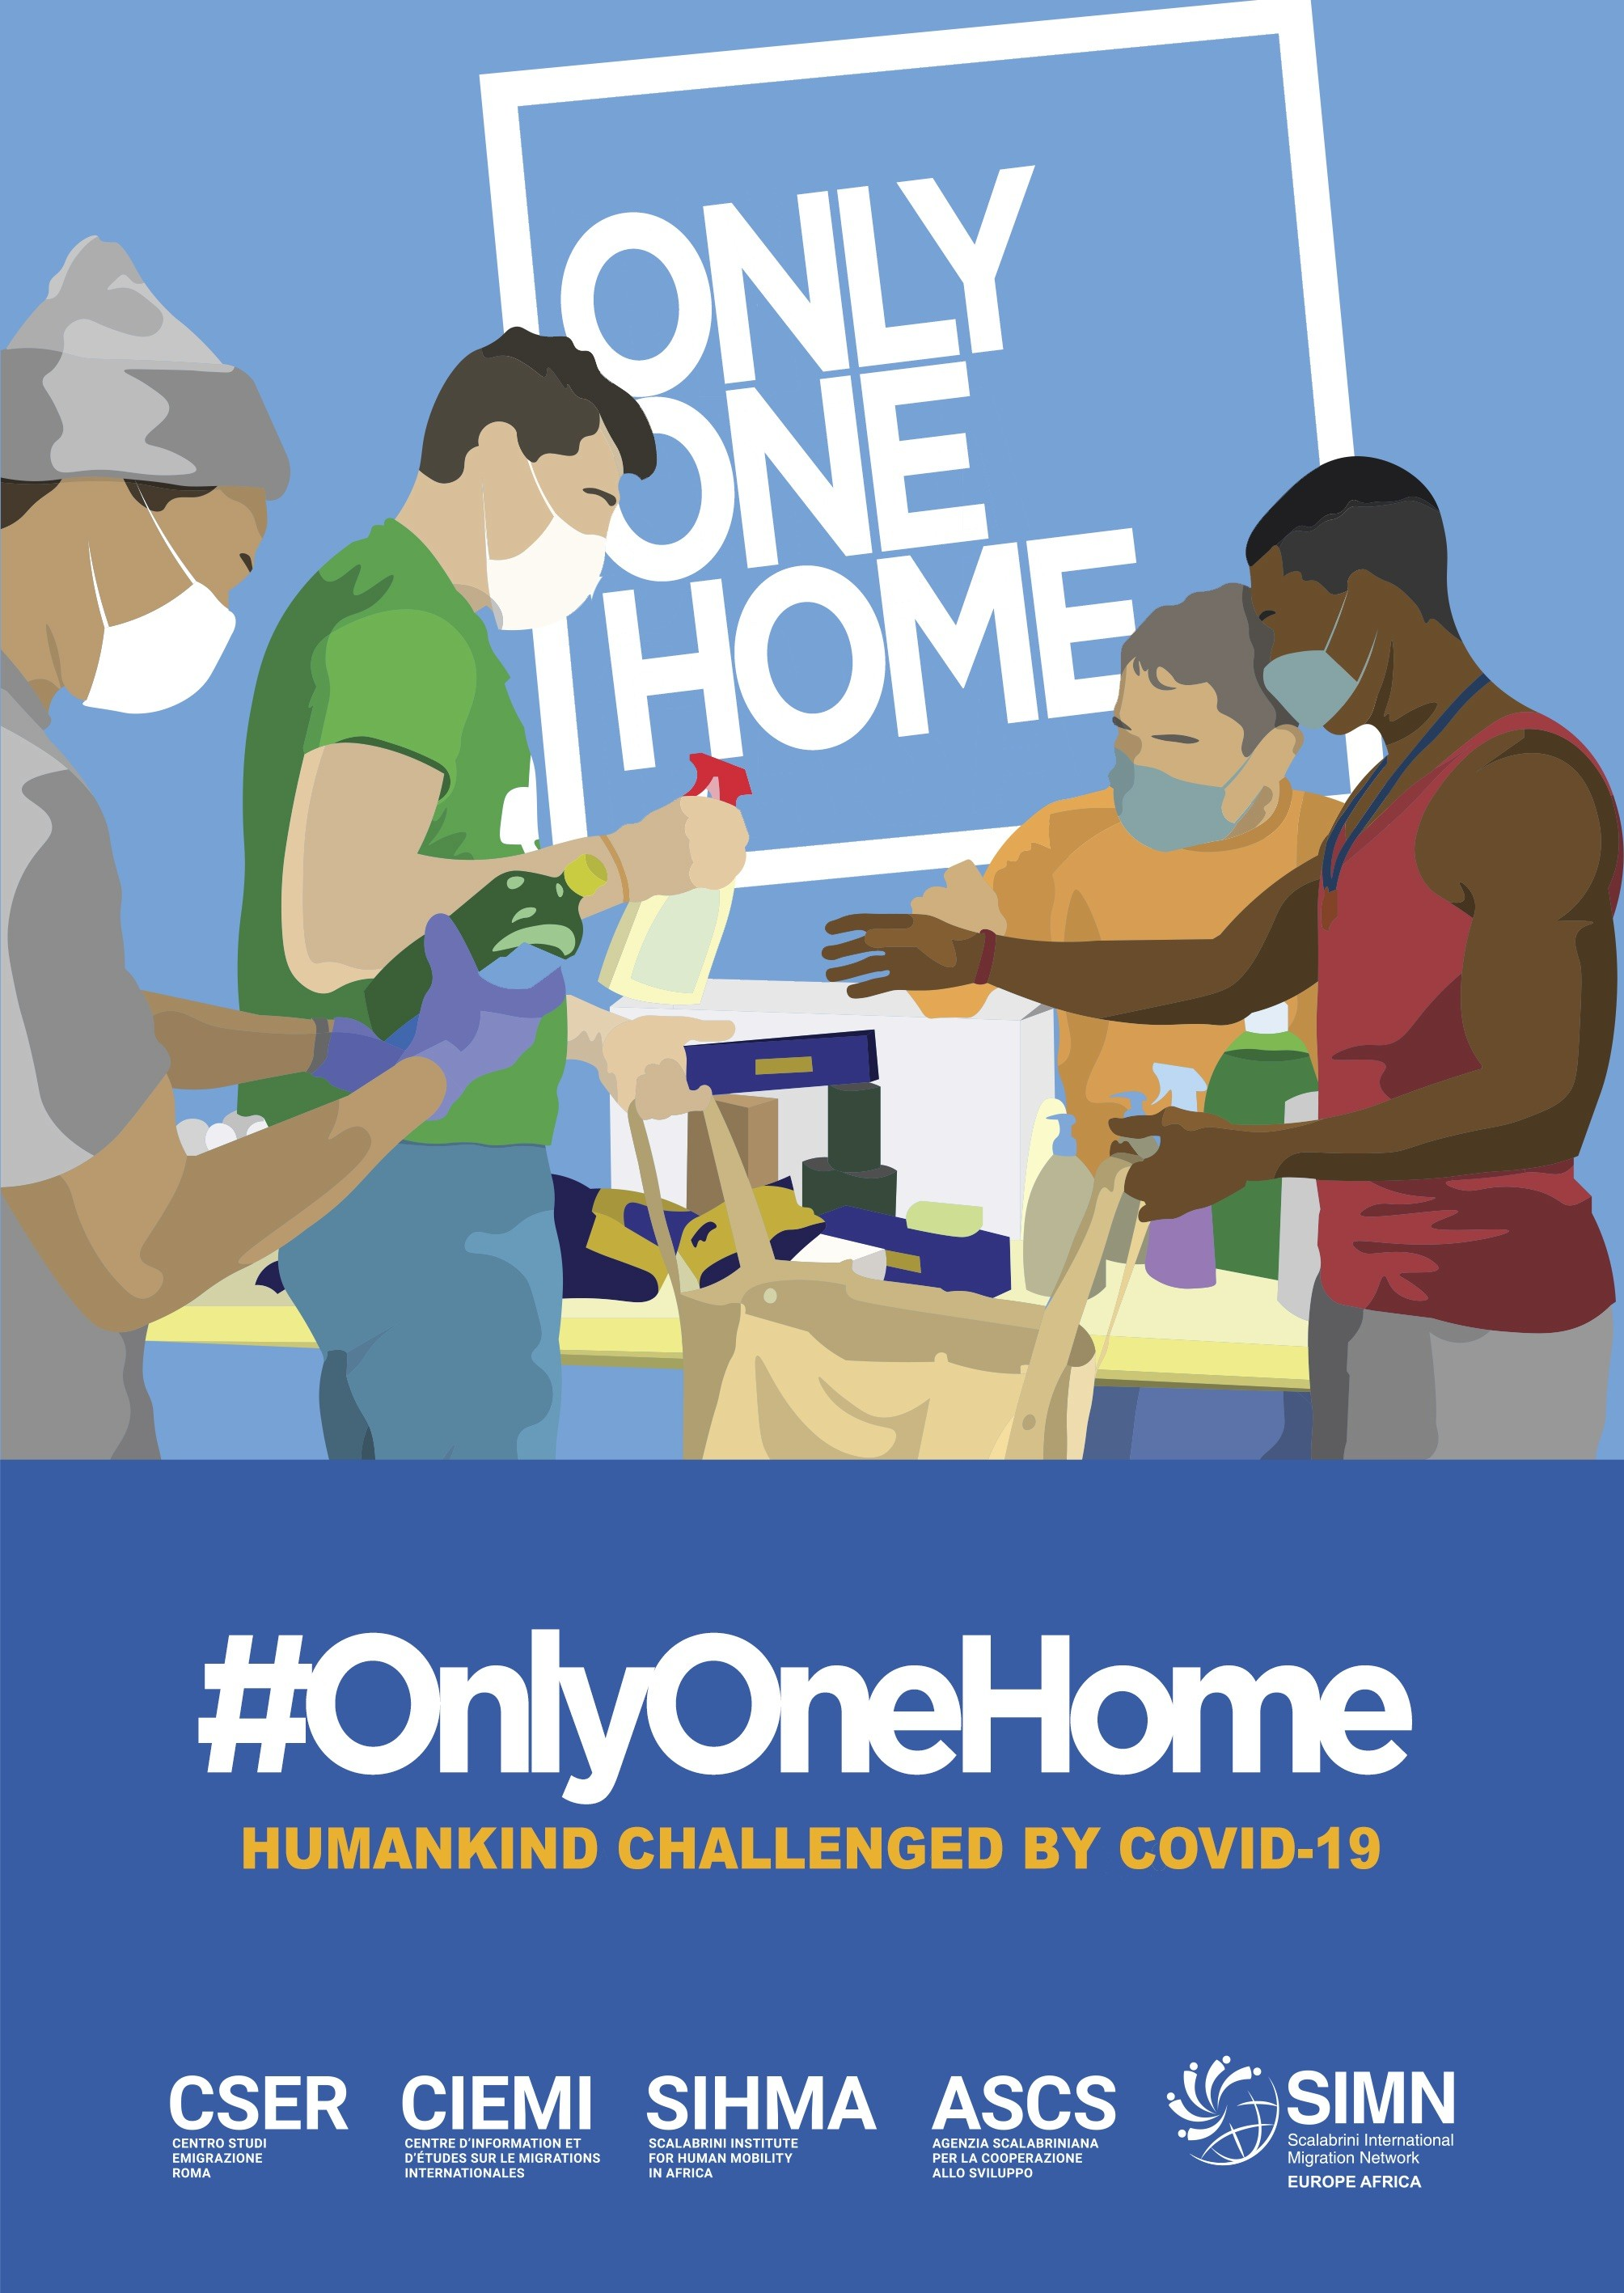 https://www.sihma.org.za/photos/shares/ONLY ONE HOME cover.jpg